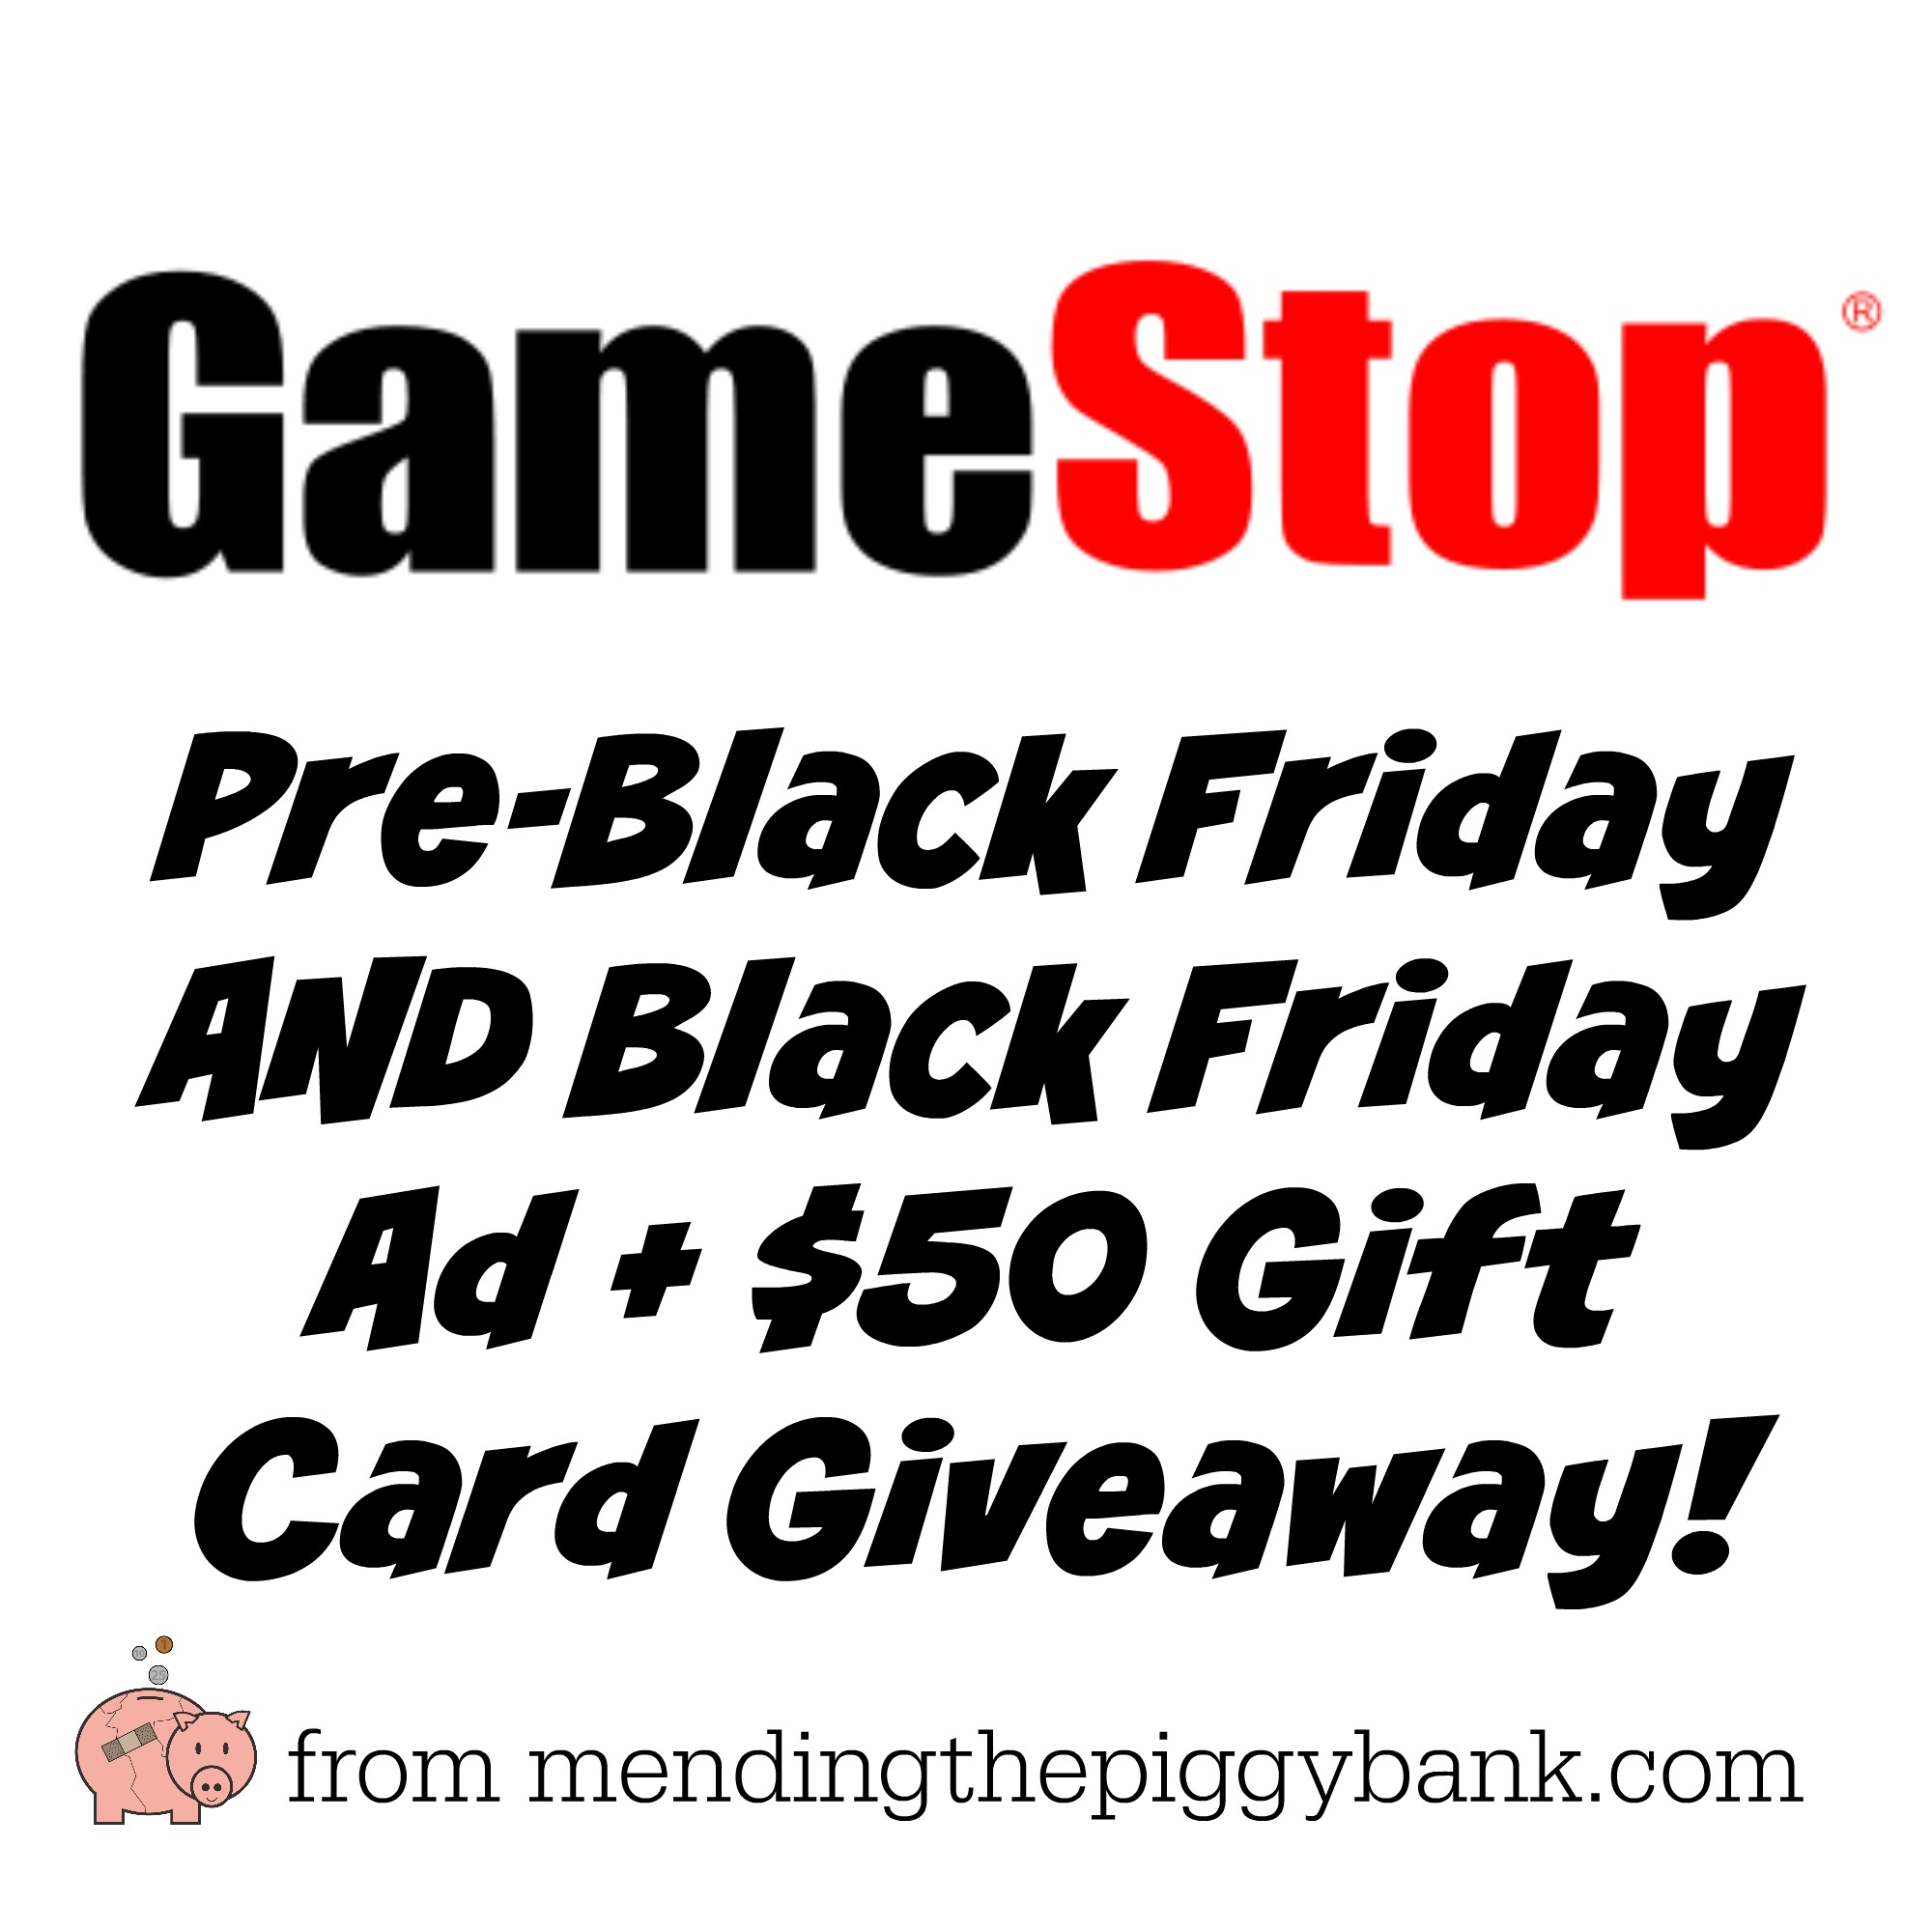 GameStop Pre-Black Friday and Black Friday Offers + $50 Gift Card ...